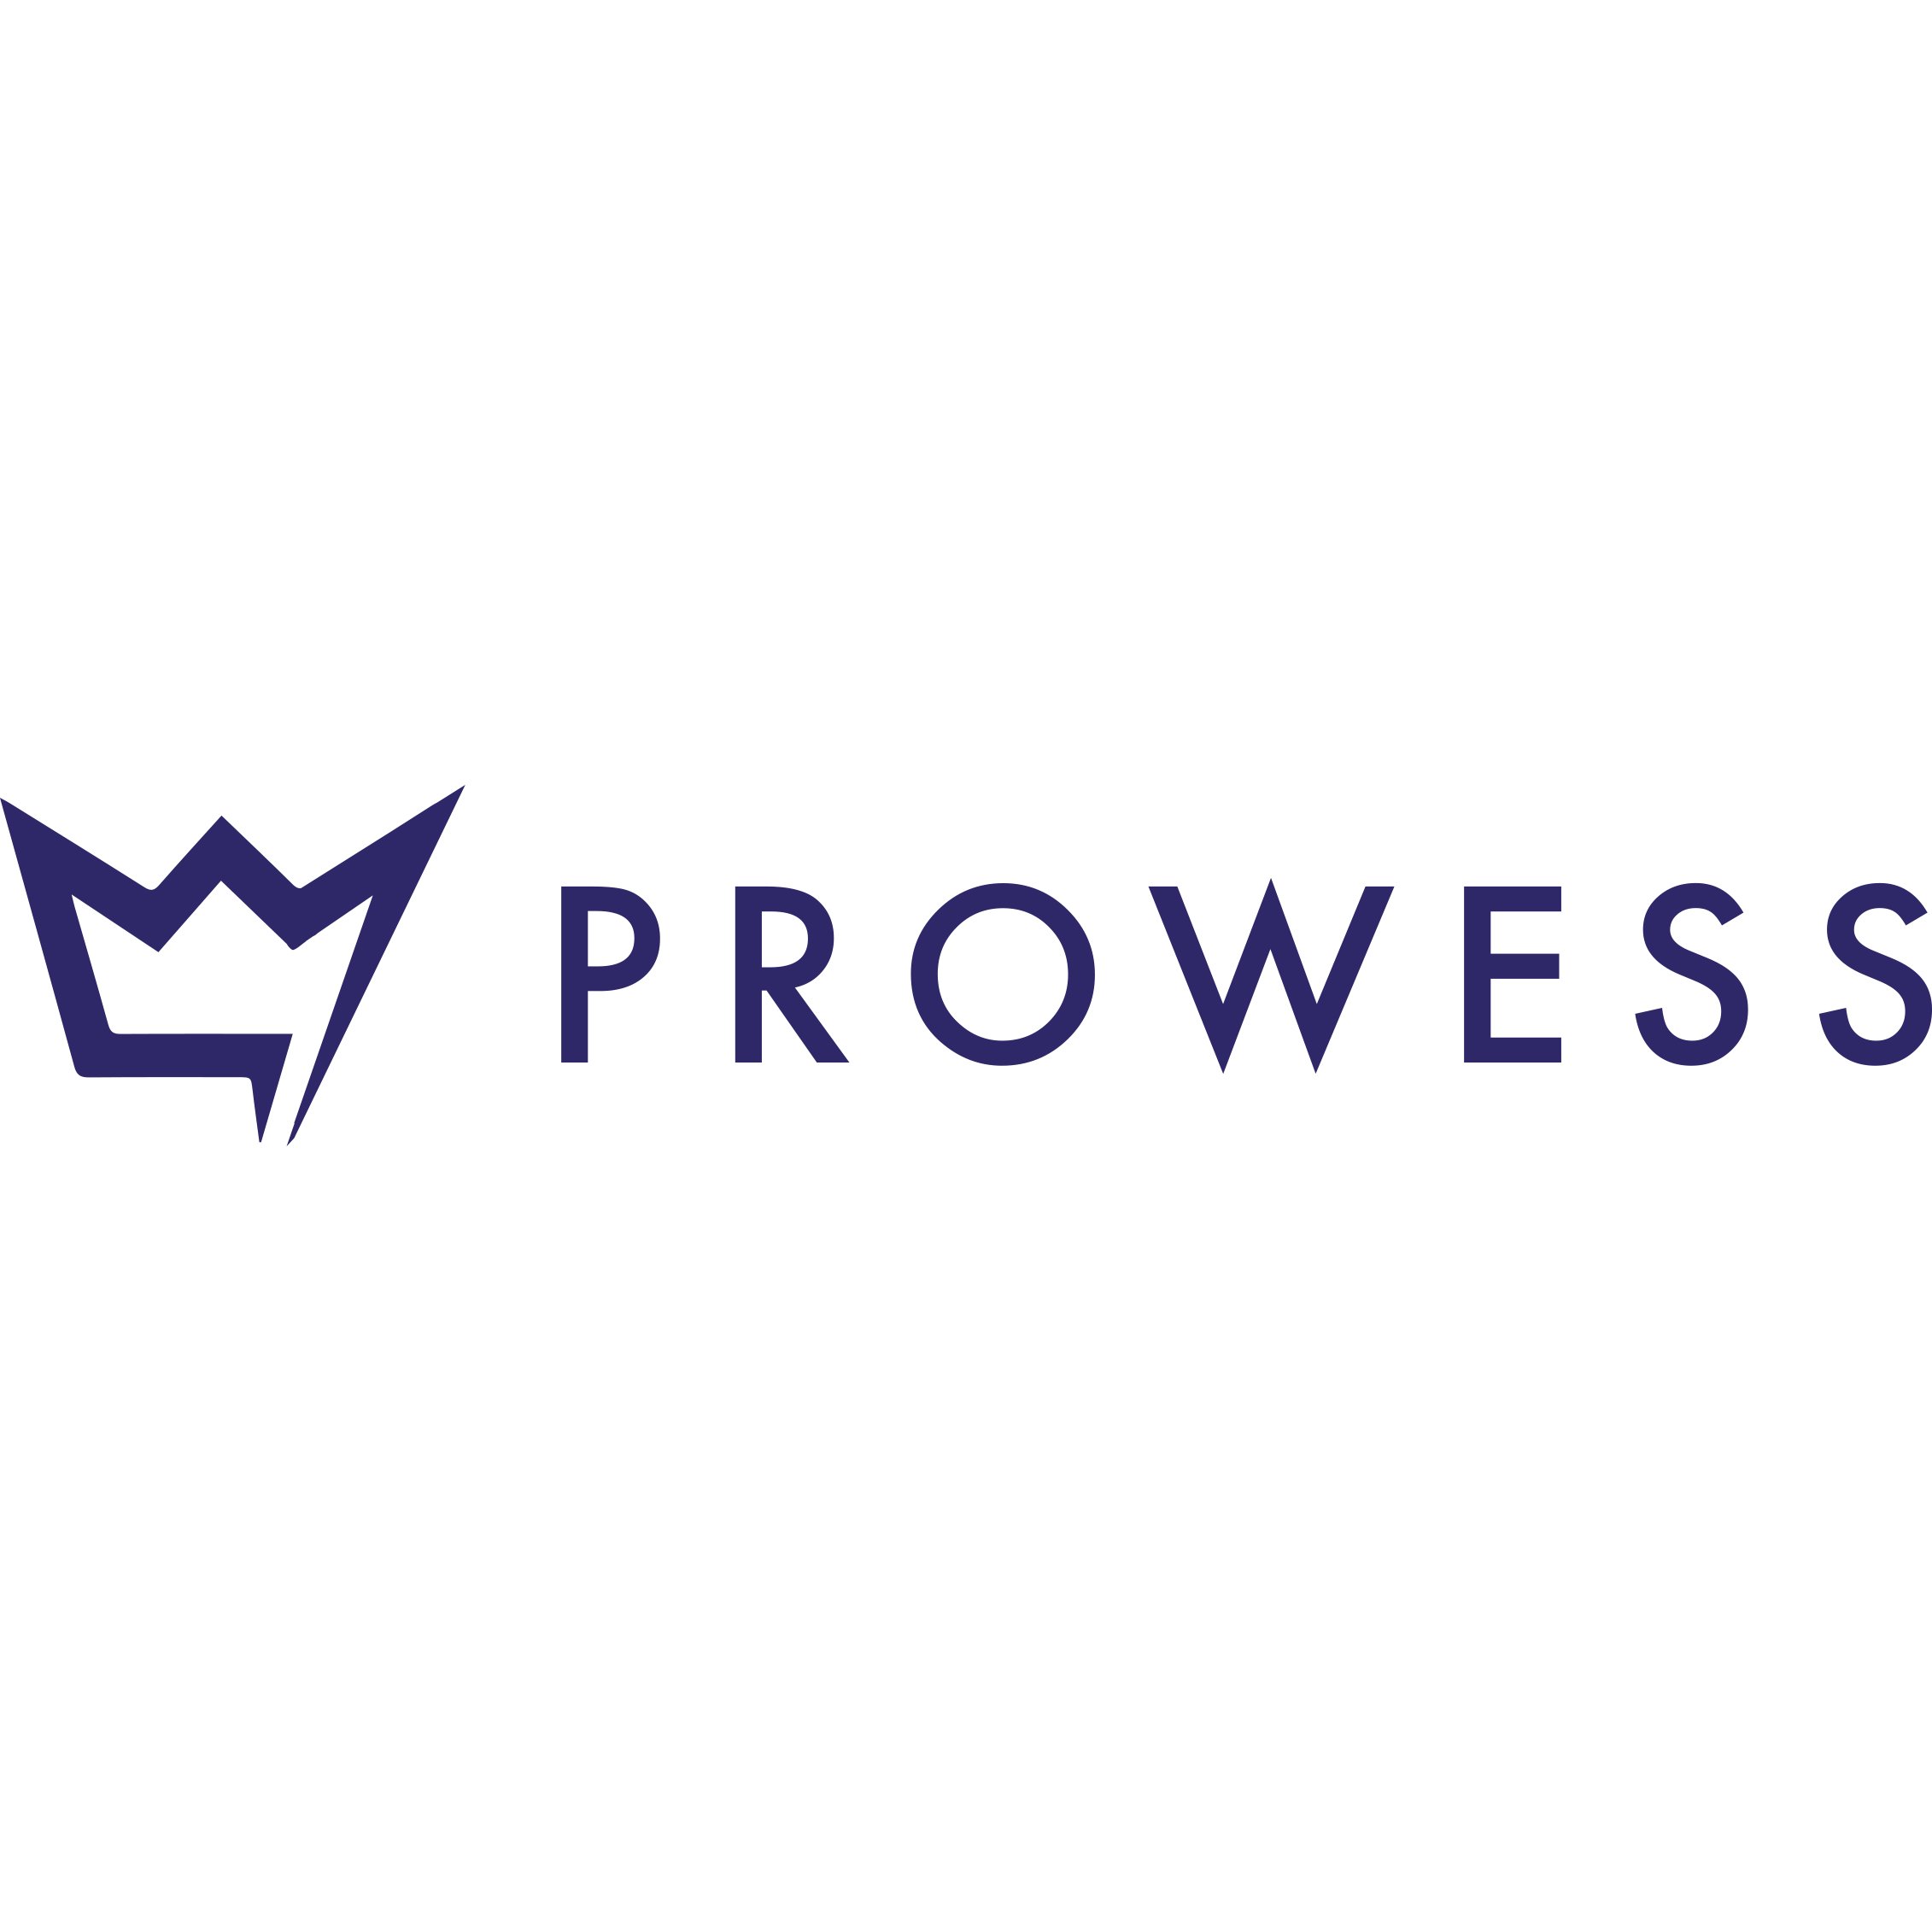 Prowess - Marketing Muscle for Fitness Companies